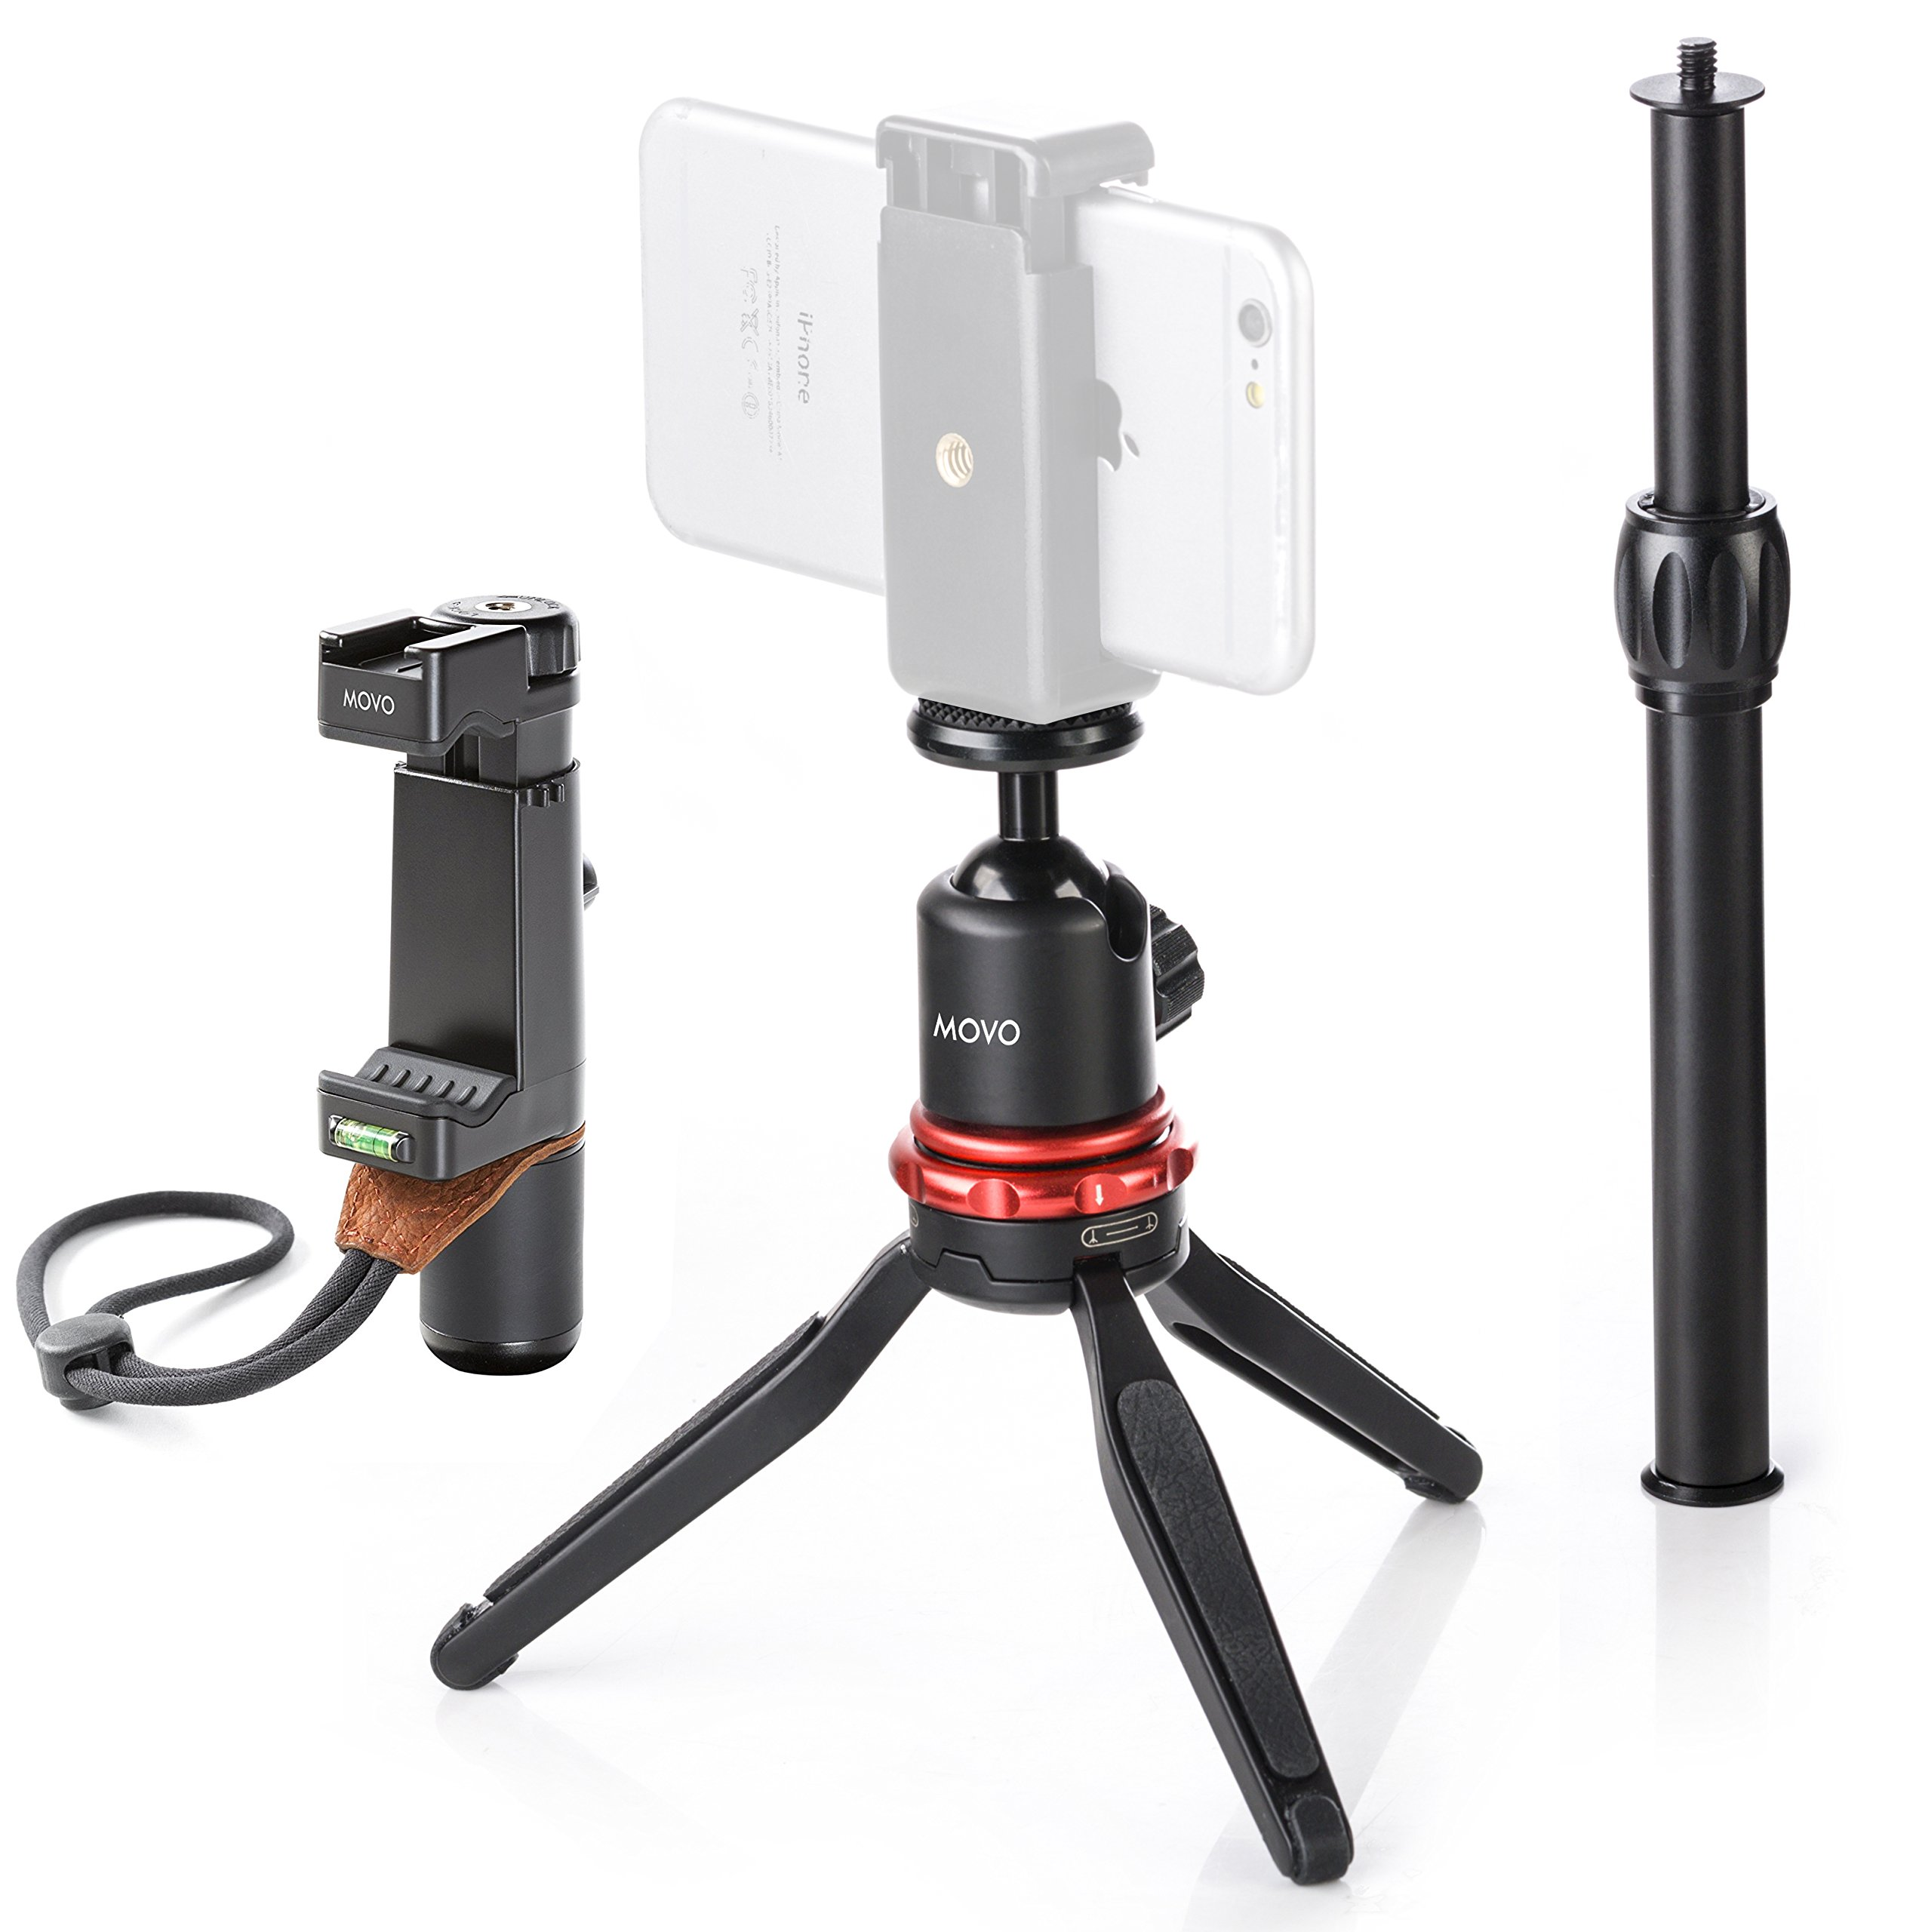 Movo MV-T1 Aluminum Alloy Tabletop Tripod with Adjustable Ball Head, Expandable Shaft with The Universal Smartphone Grip for iPhone 5, 5C, 5S, 6, 6S, 7, 8, X, XS, XS Max, 11, 11 Pro, Samsung Galaxy by Movo